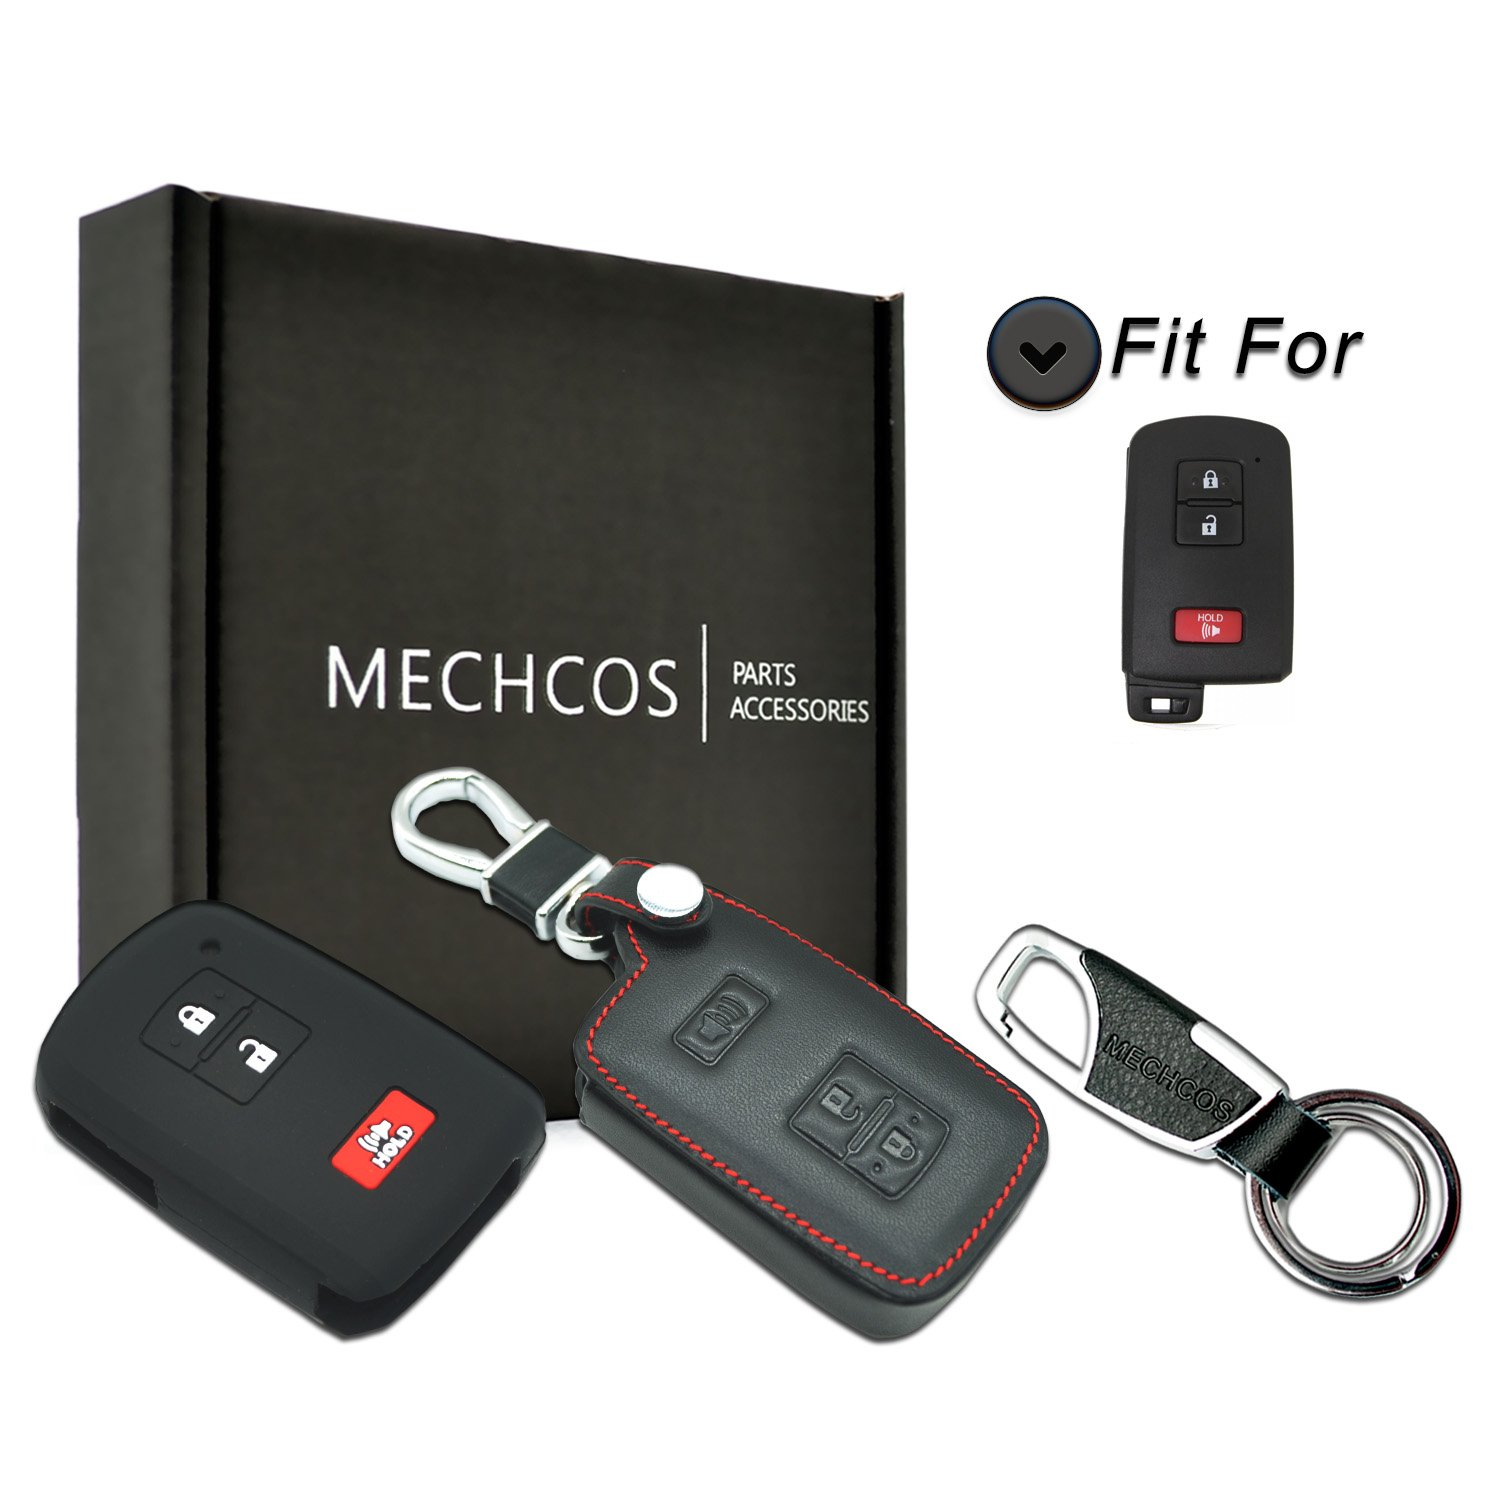 MECHCOS Compatible with fit for HYQ14FBA 2016 2017 Toyota Tacoma Land Cruise Prius V RAV4 3buttons Leather Keyless Entry Remote Control Smart Key Fob Cover Pouch Bag Jacket Case Protector Shell